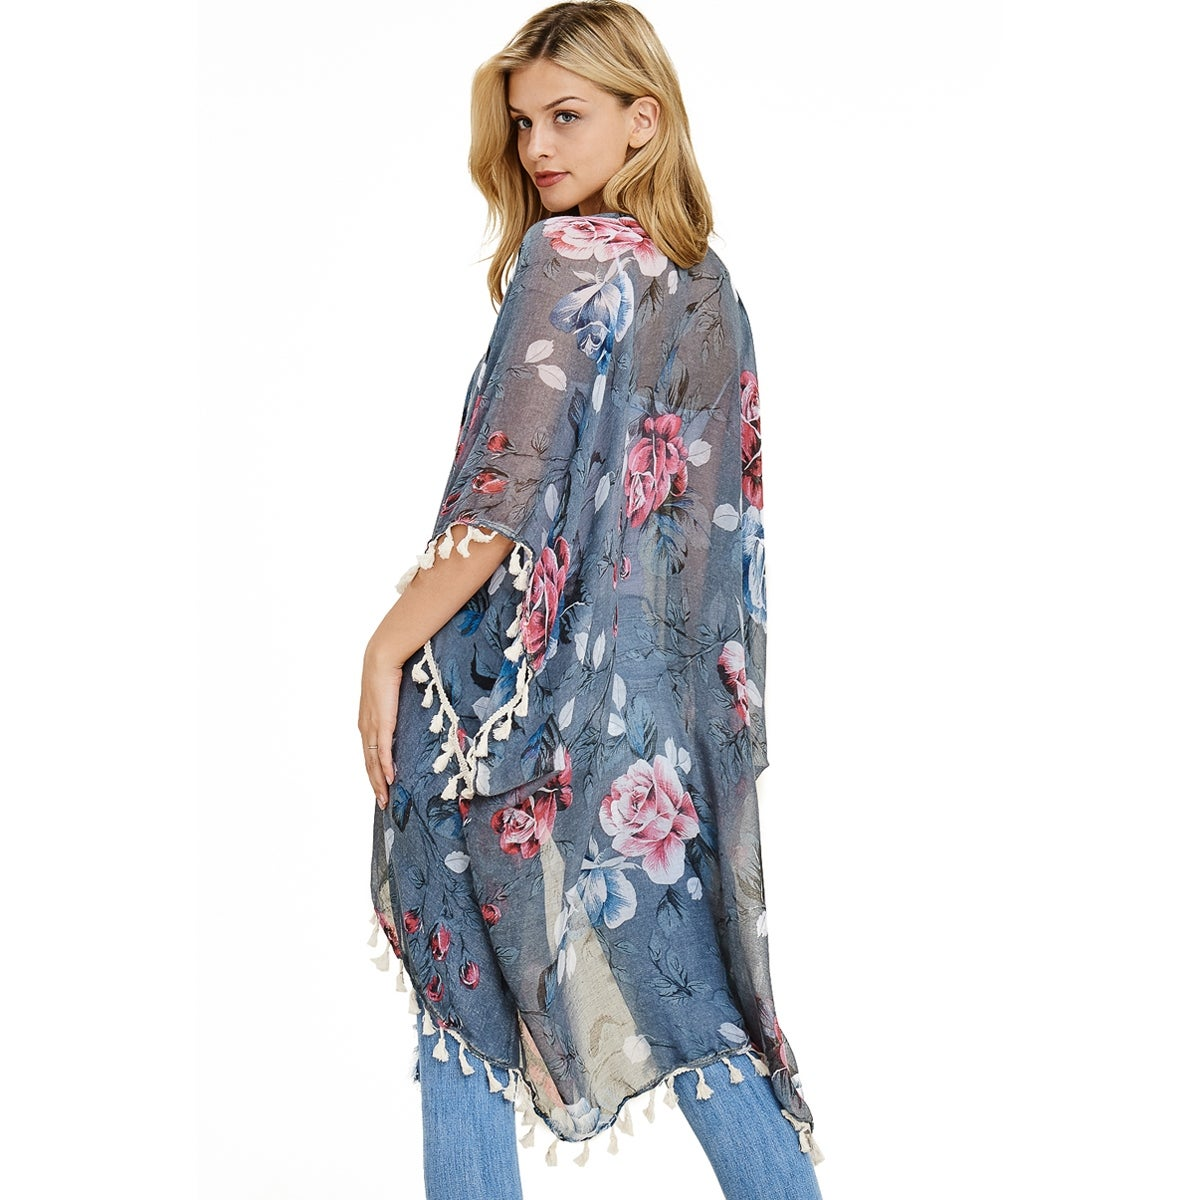 34cb46f9d1f8a Shop Riah Fashion Women's Floral Tassel Kimono Cardigan - Free Shipping On  Orders Over $45 - Overstock - 24267544